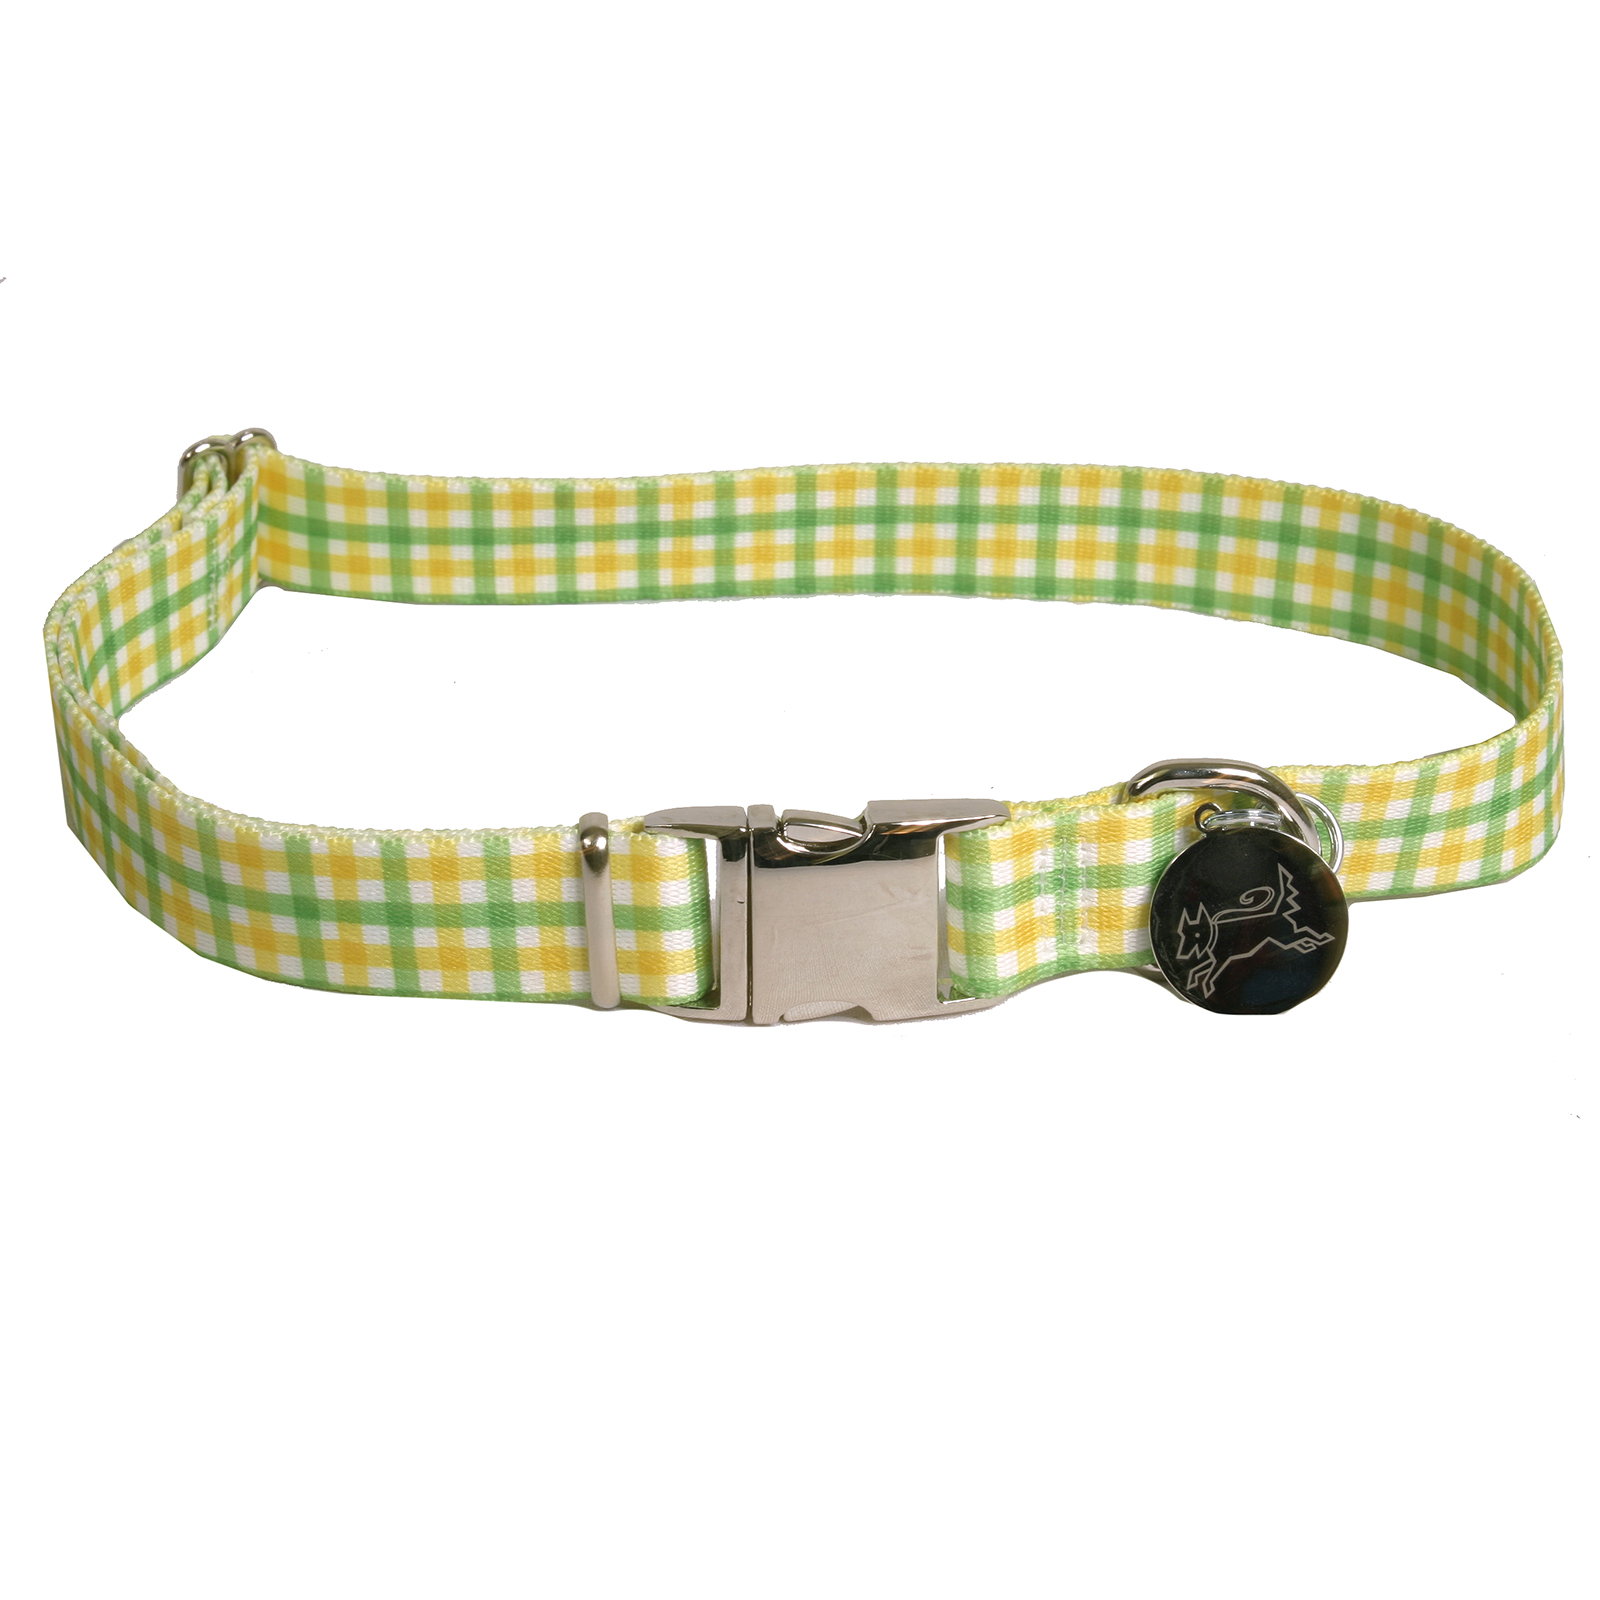 Southern Dawg: Gingham Yellow & Green Premium Dog Collar